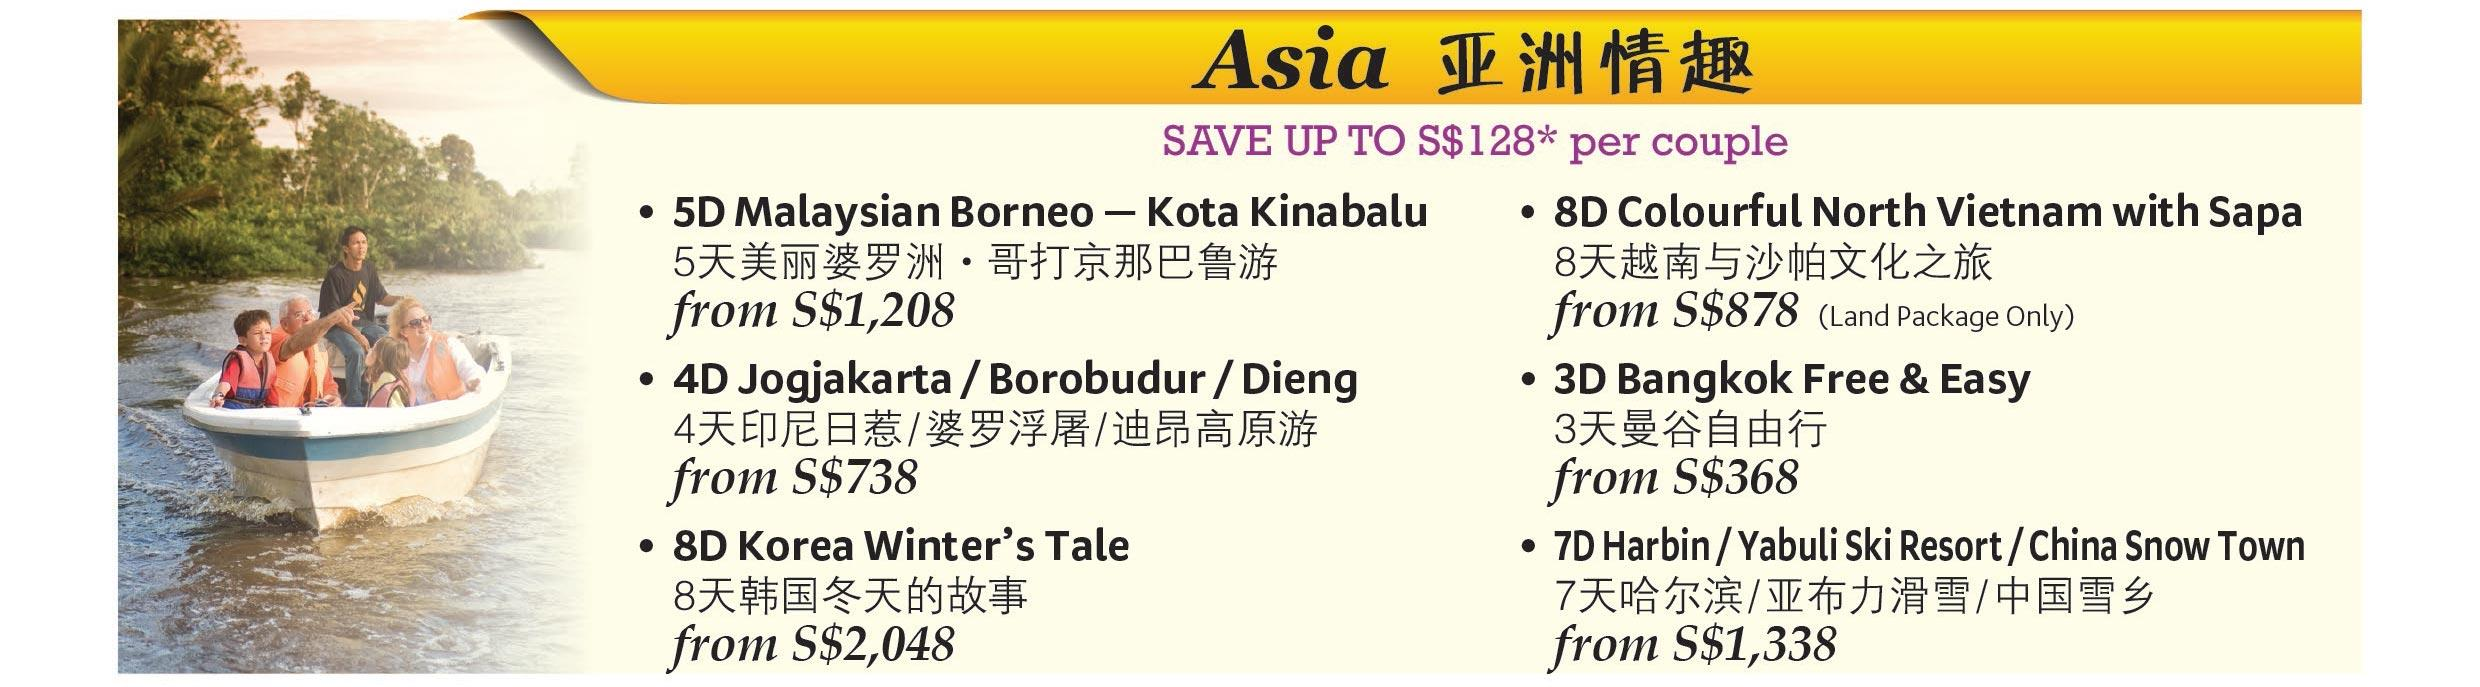 Holiday Package Deals Asia Save Up To 128 Per Couple